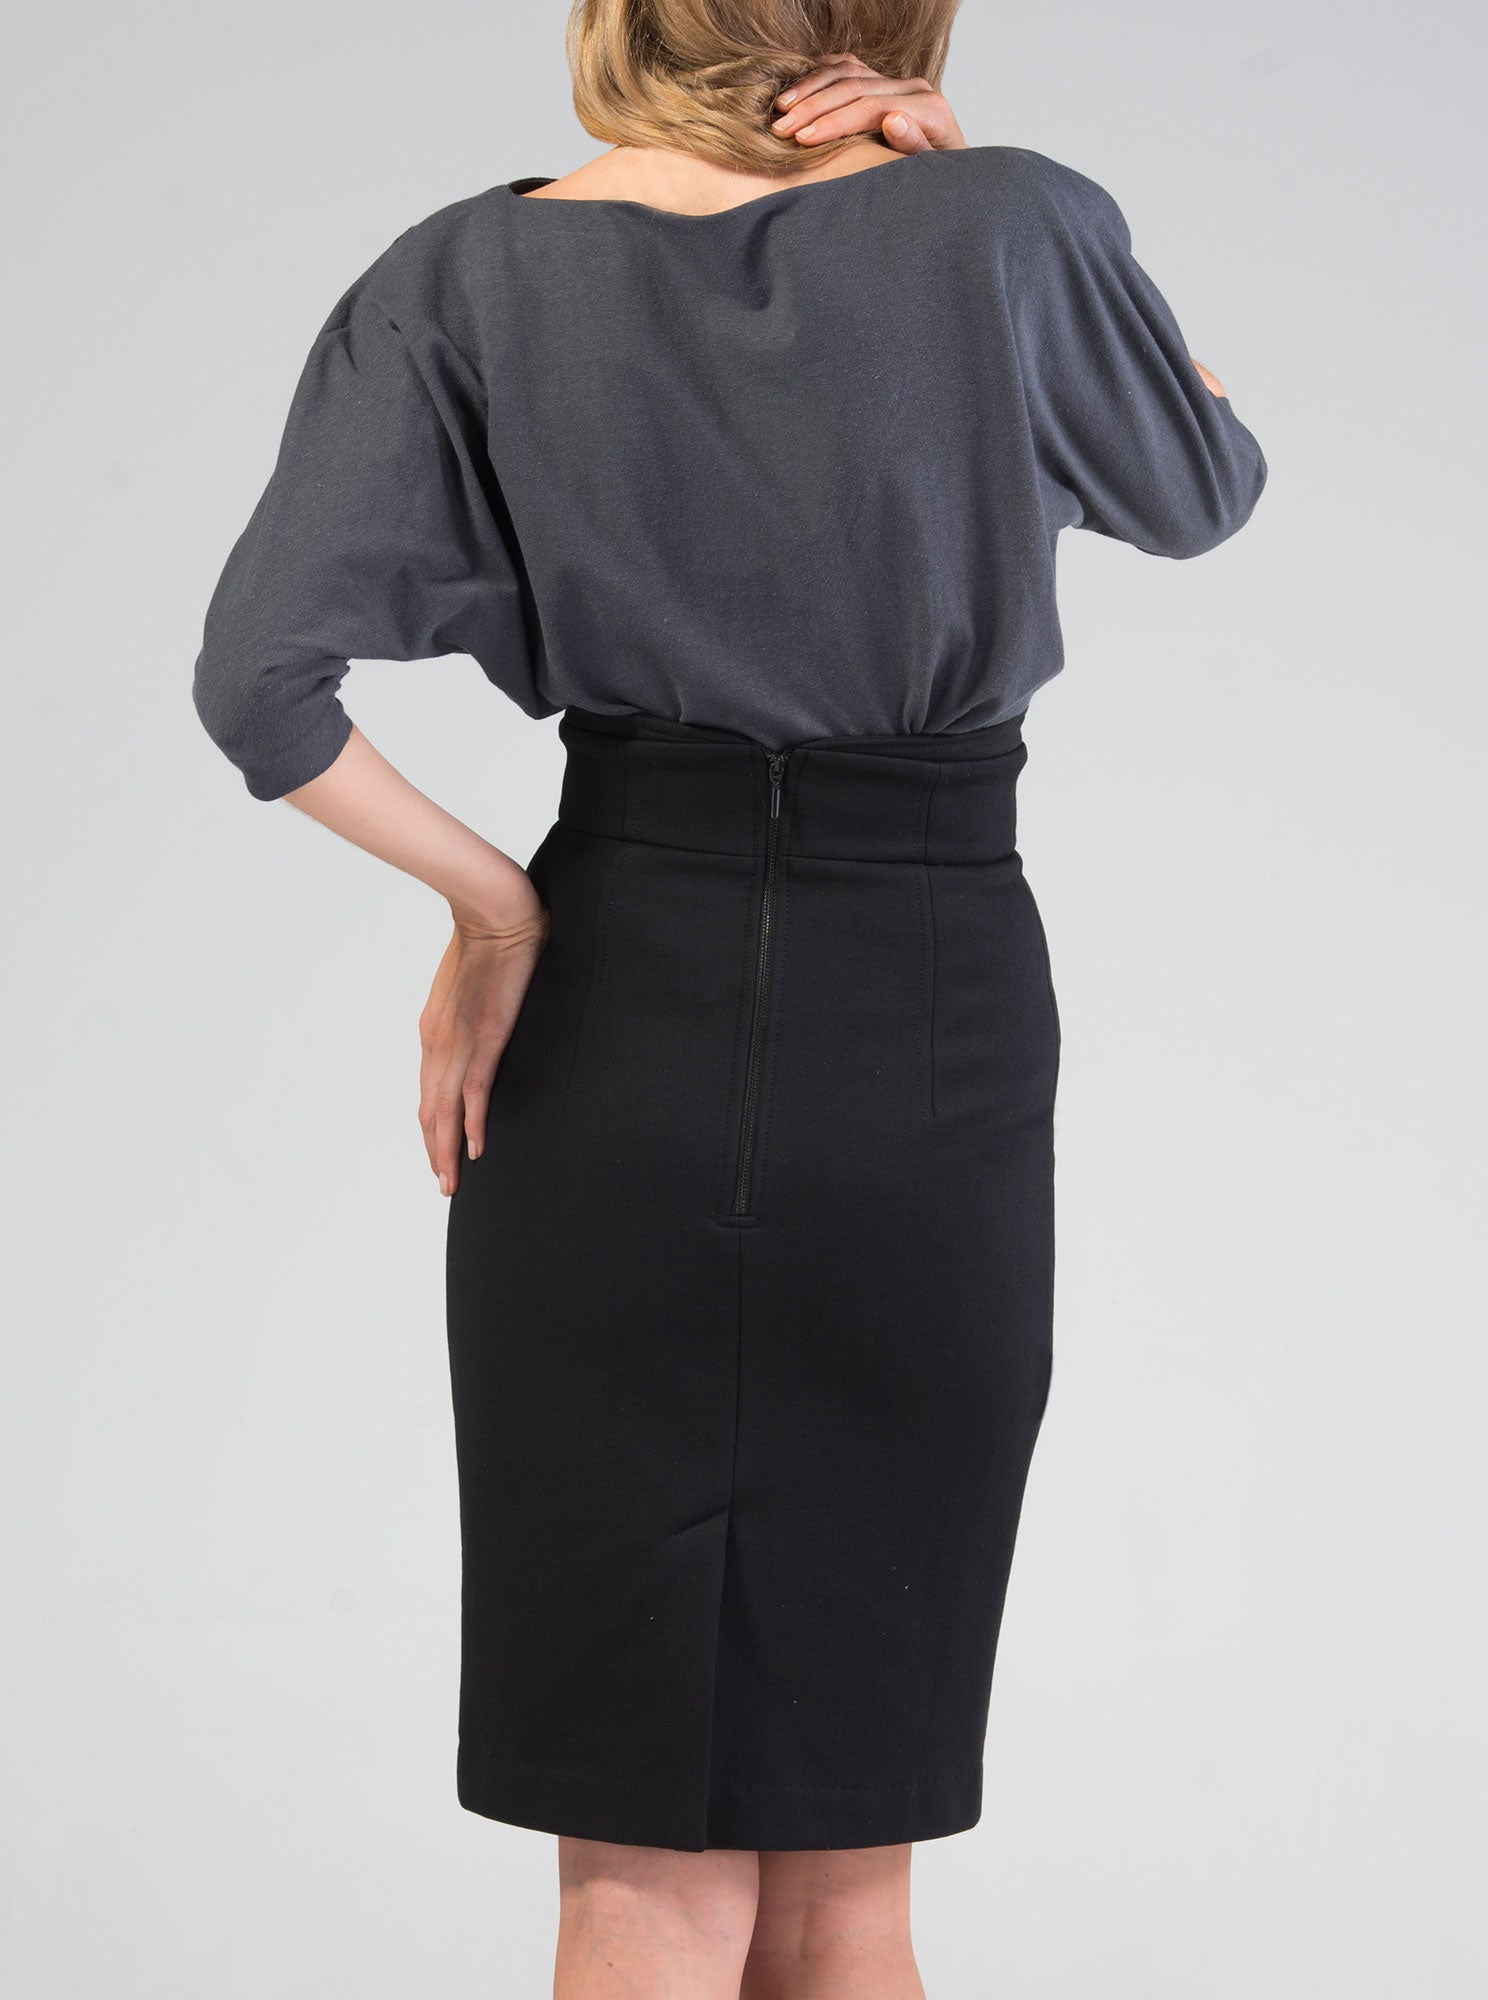 VAIKE Black Organic Cotton Embroidered Skirt